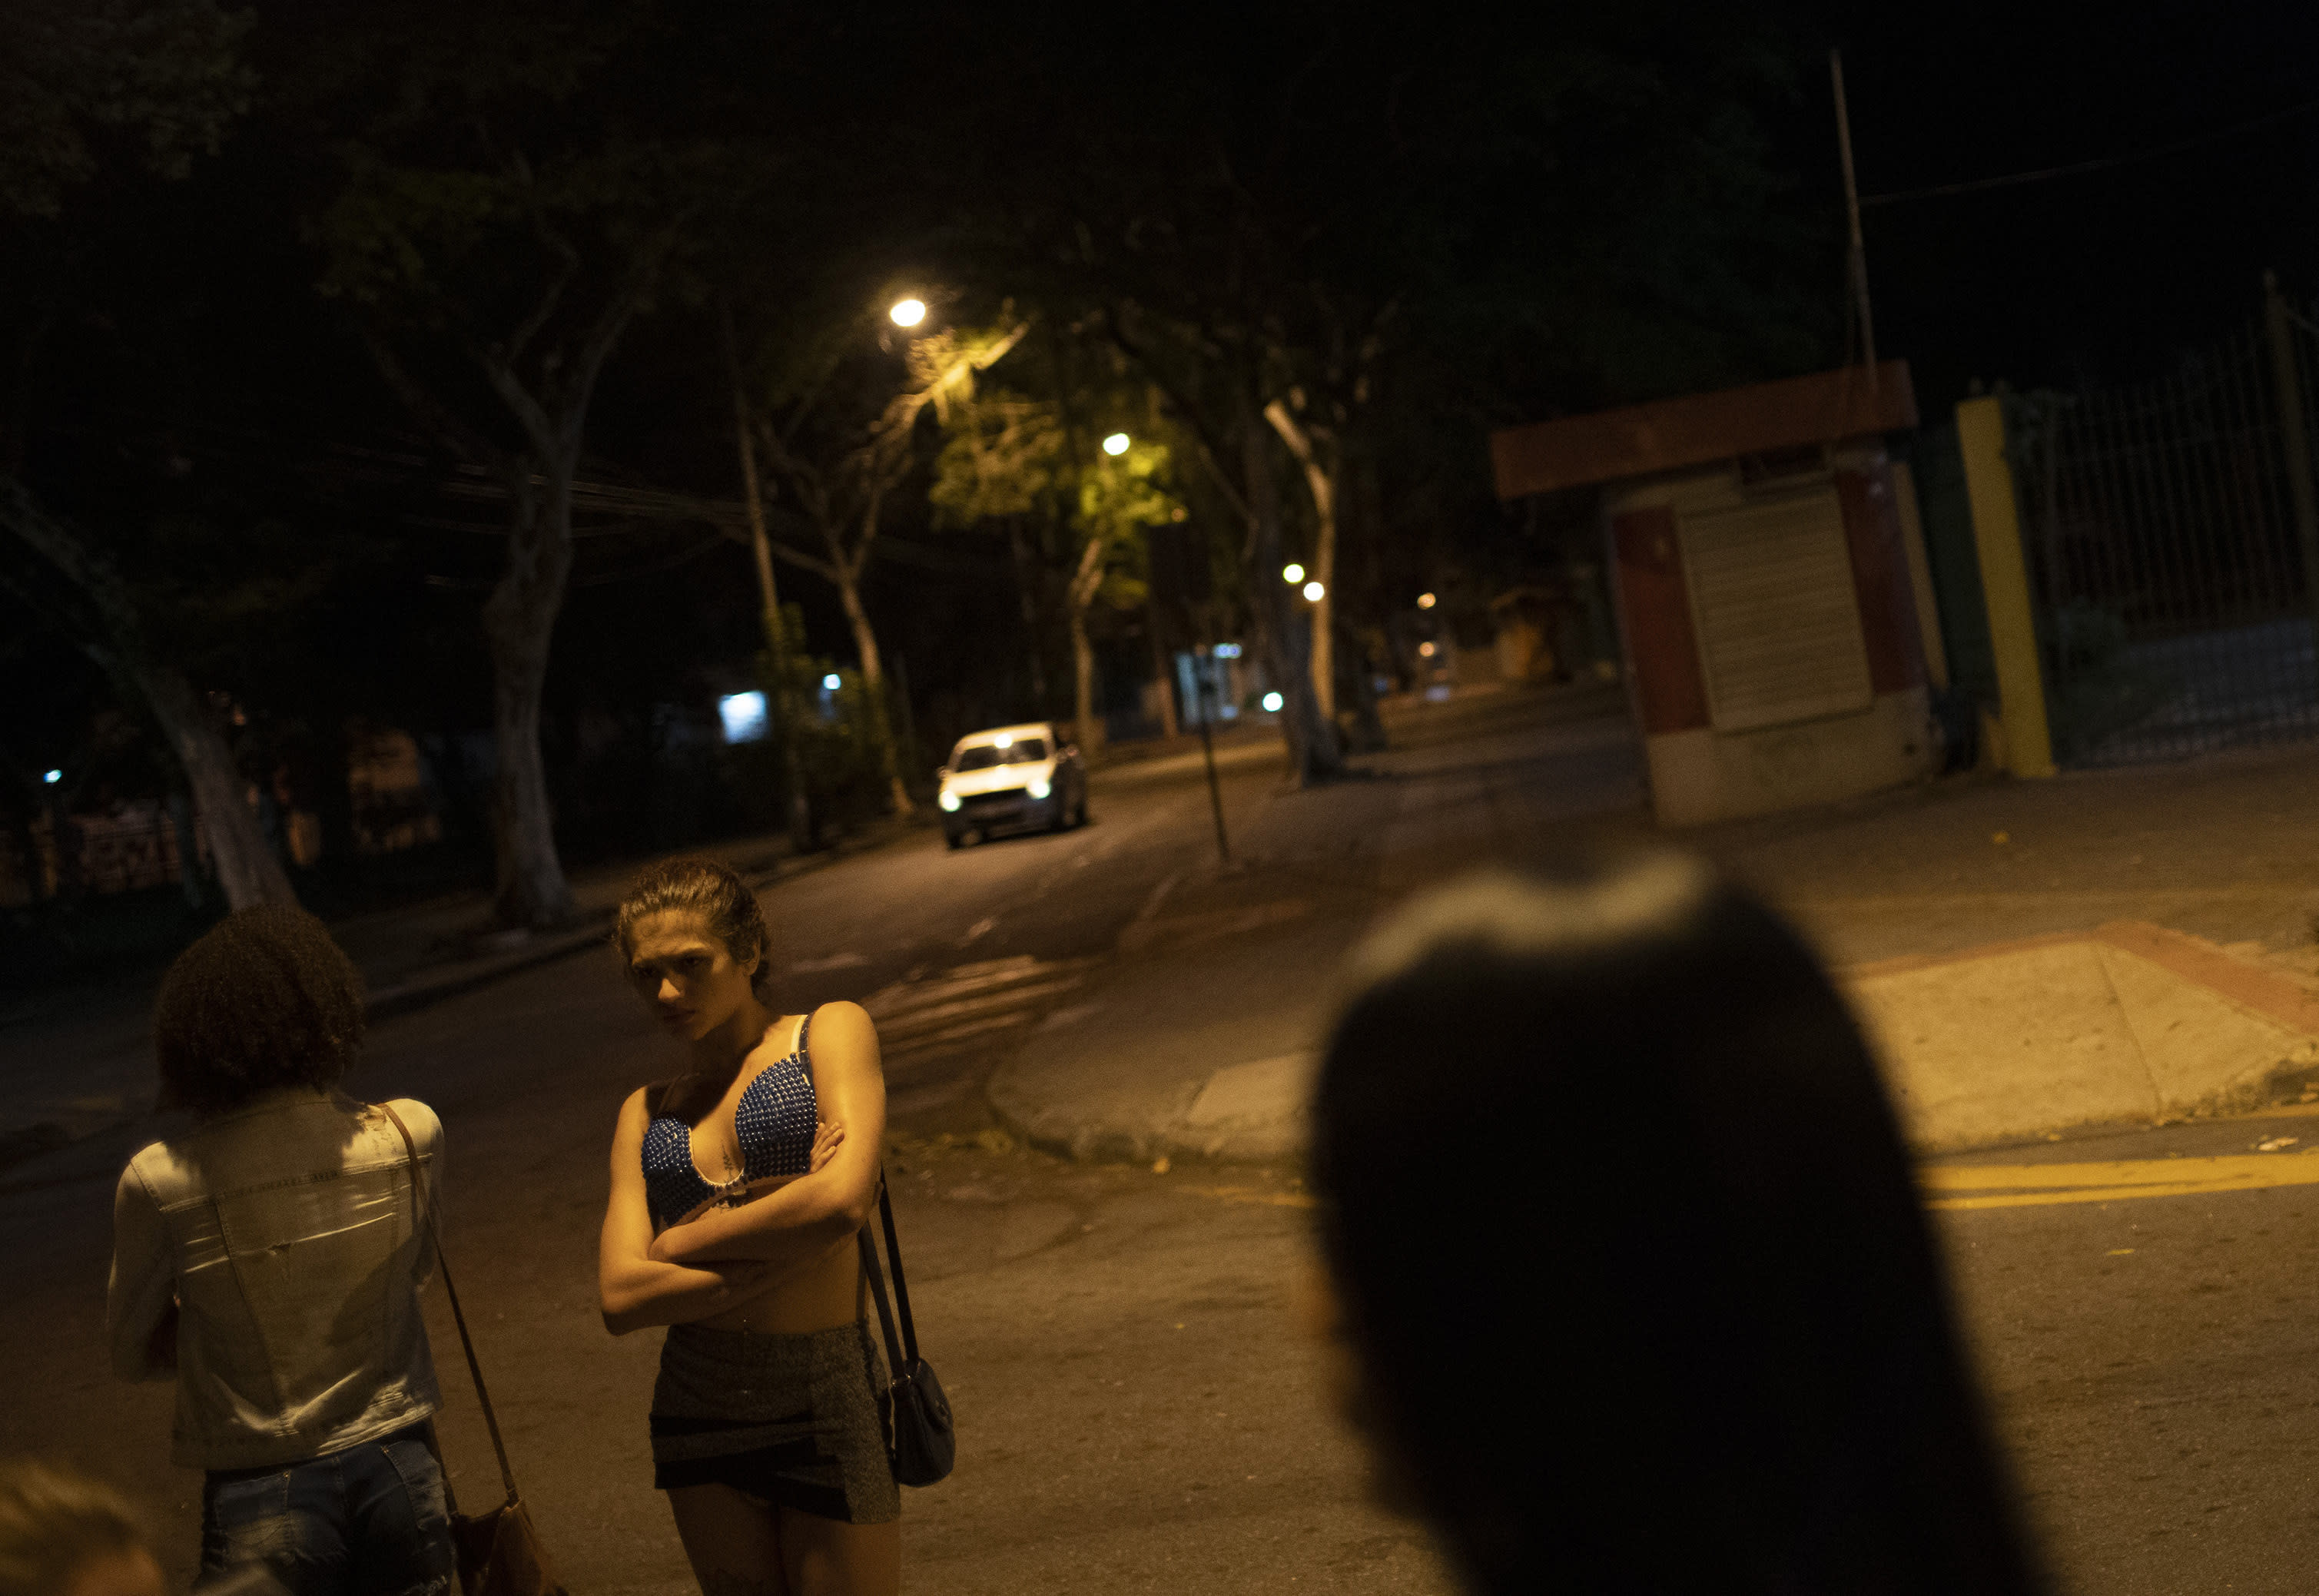 Transgender sex workers wait for customers in Niteroi, Brazil, Saturday, June 27, 2020, amid the new coronavirus pandemic. While some sex workers found refuge, others are stuck on the streets, hustling to earn enough to get by as the economy tanks. (AP Photo/Silvia Izquierdo)